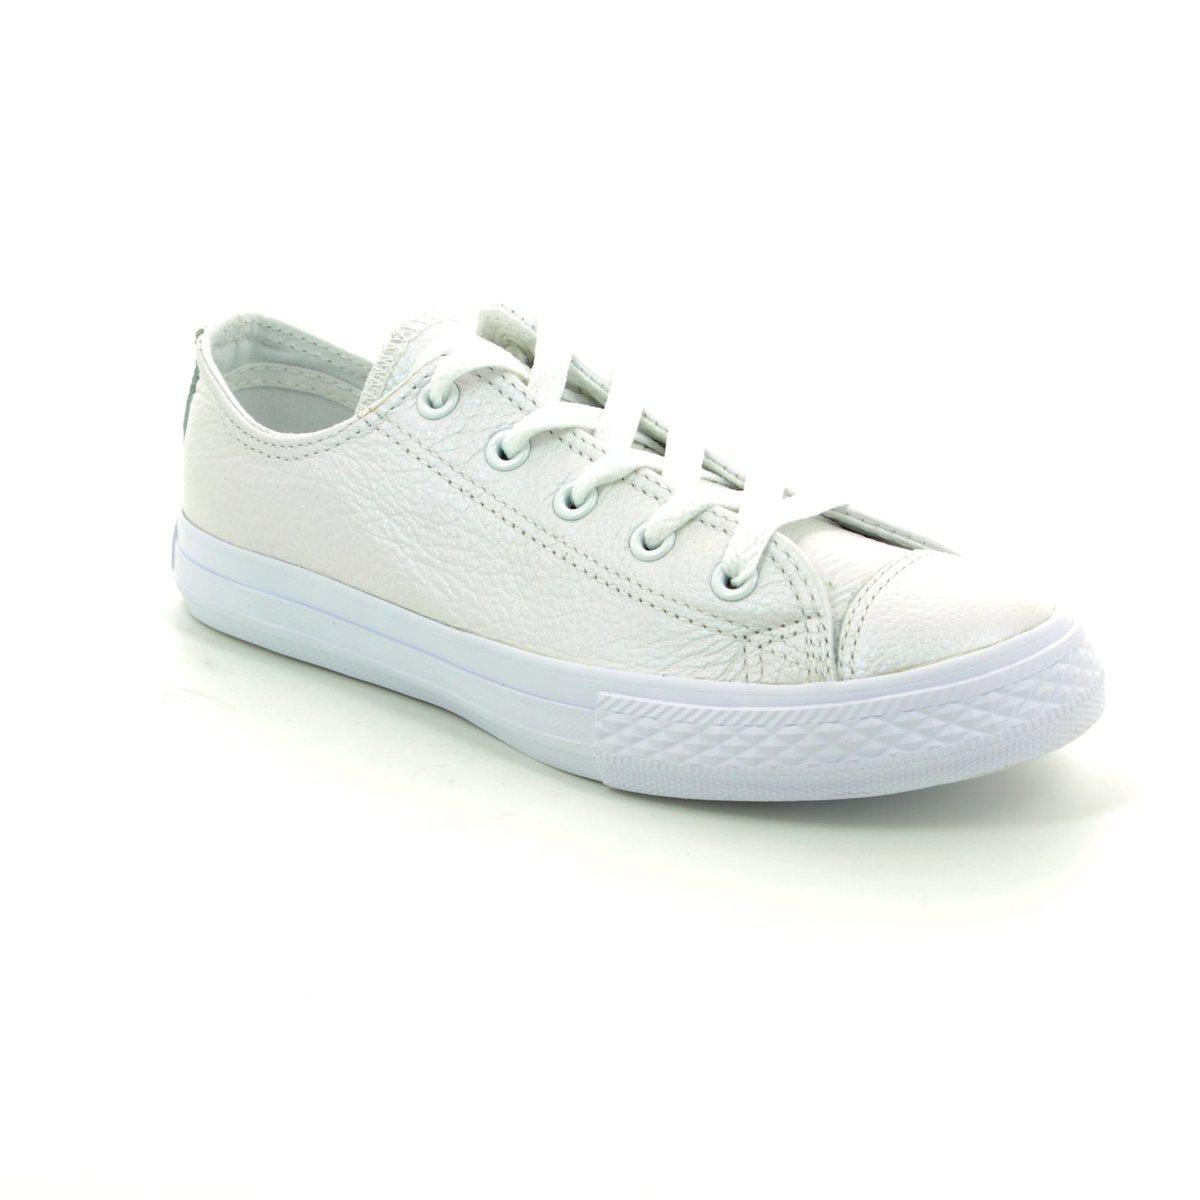 8324d894c838 Converse Trainers - White - 358009C Chuck Taylor All Star Ox Junior Leather